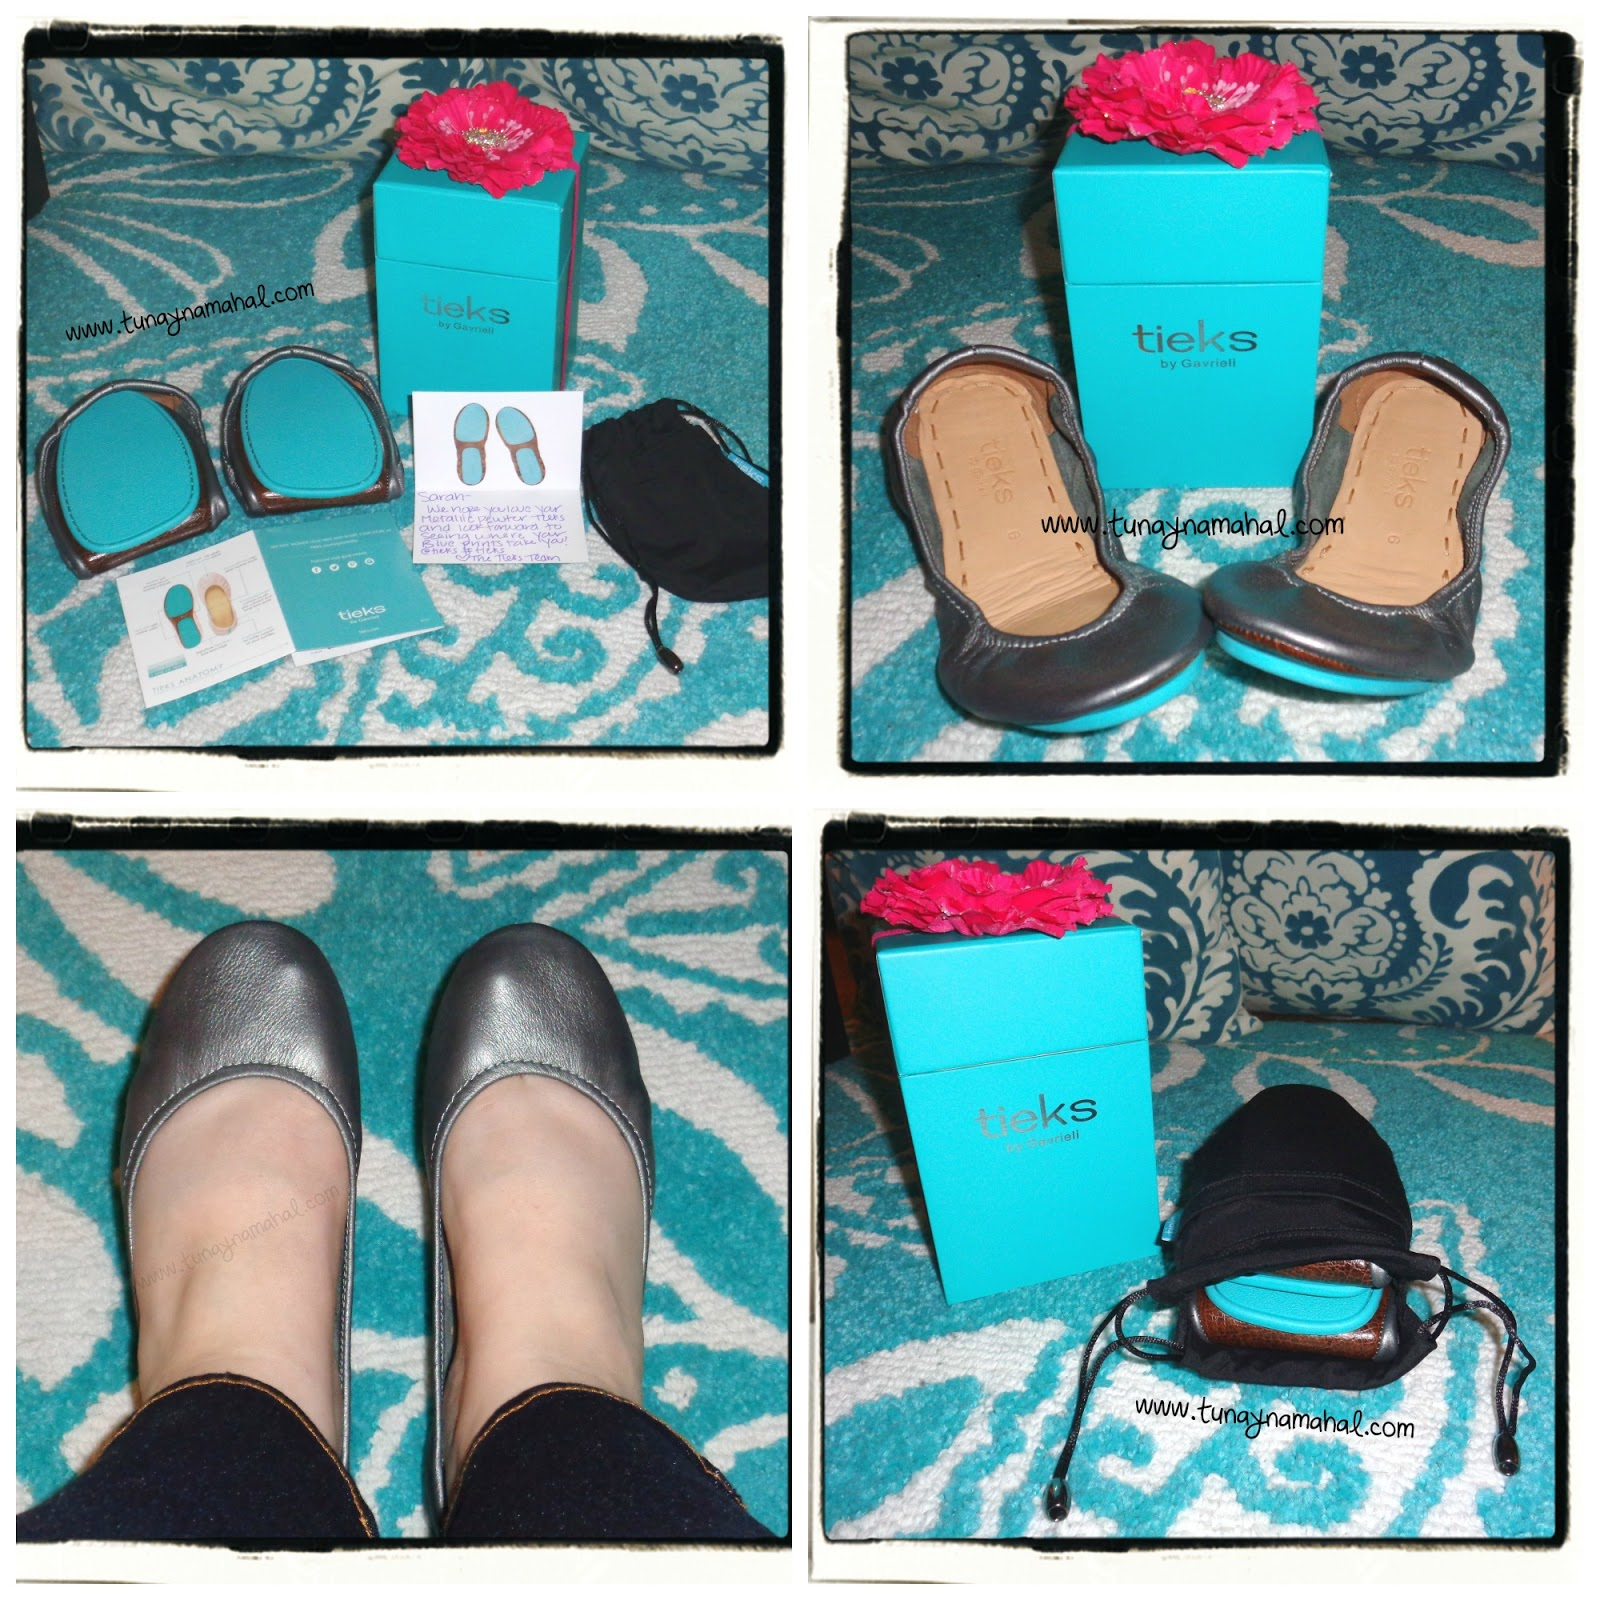 65f489b75c My New Love  Tieks Ballet Flats!